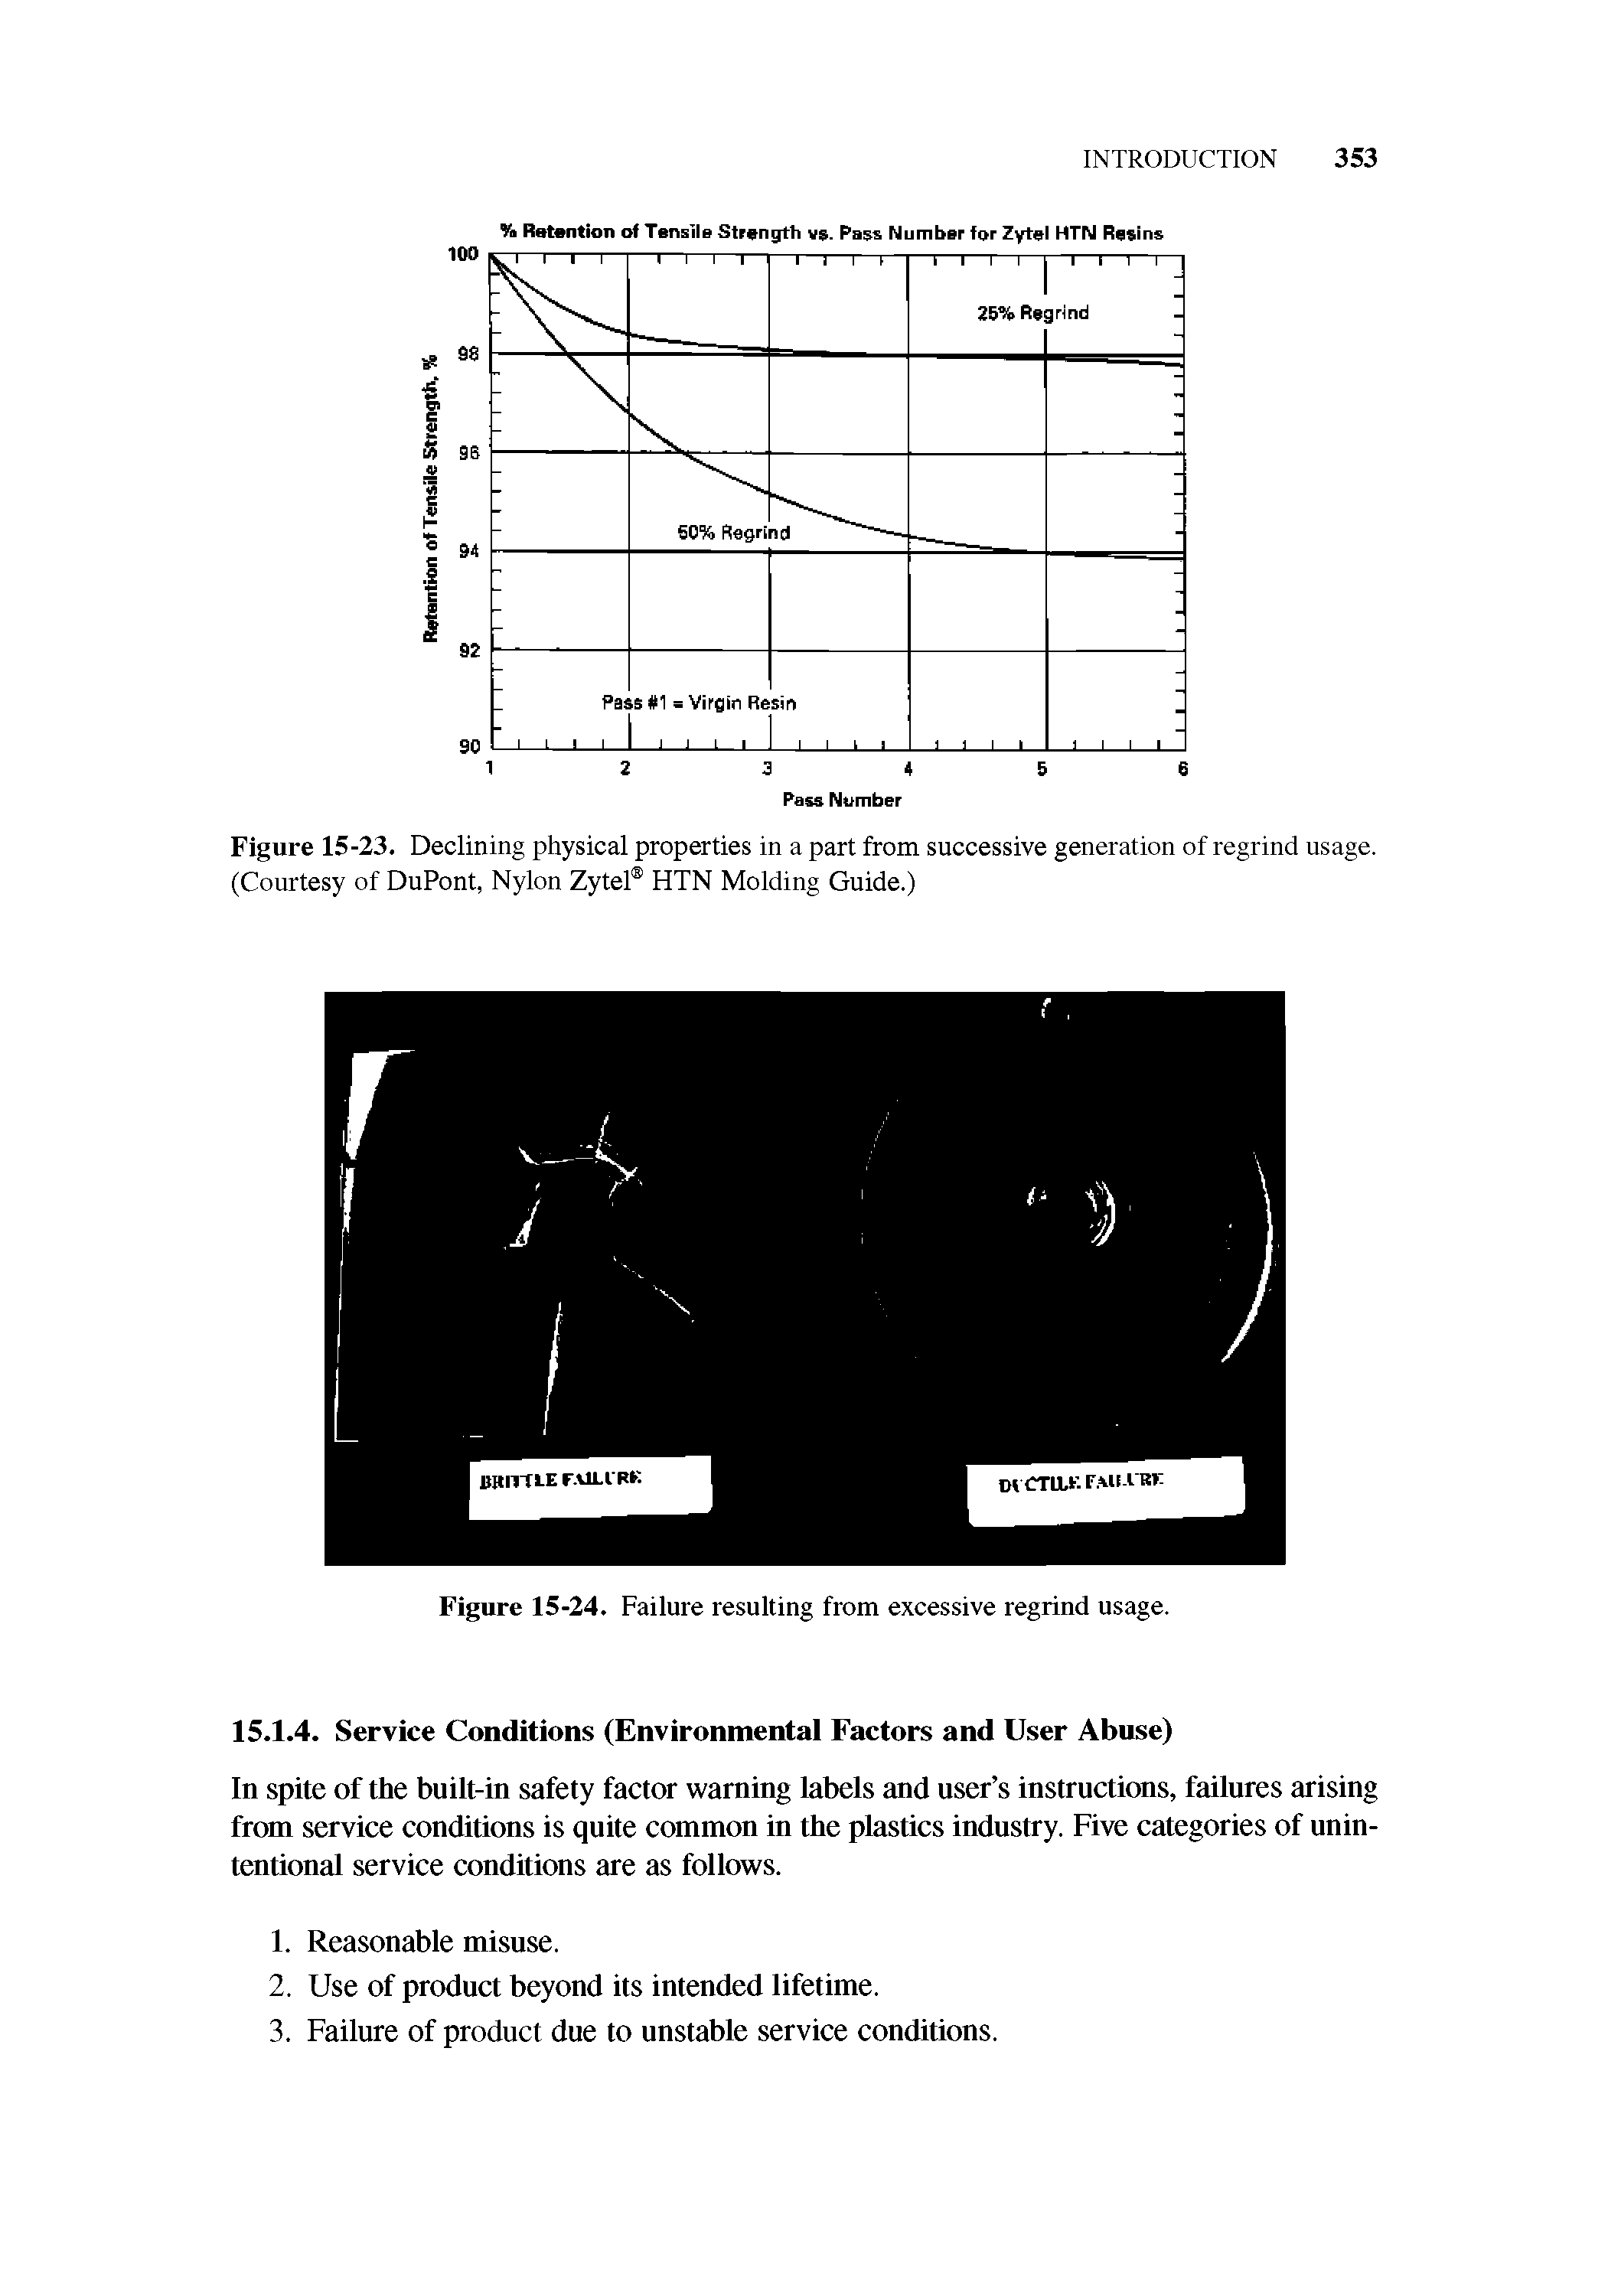 Figure 15-23. Declining physical properties in a part from successive generation of regrind usage. (Courtesy of DuPont, Nylon Zytel HTN Molding Guide.)...